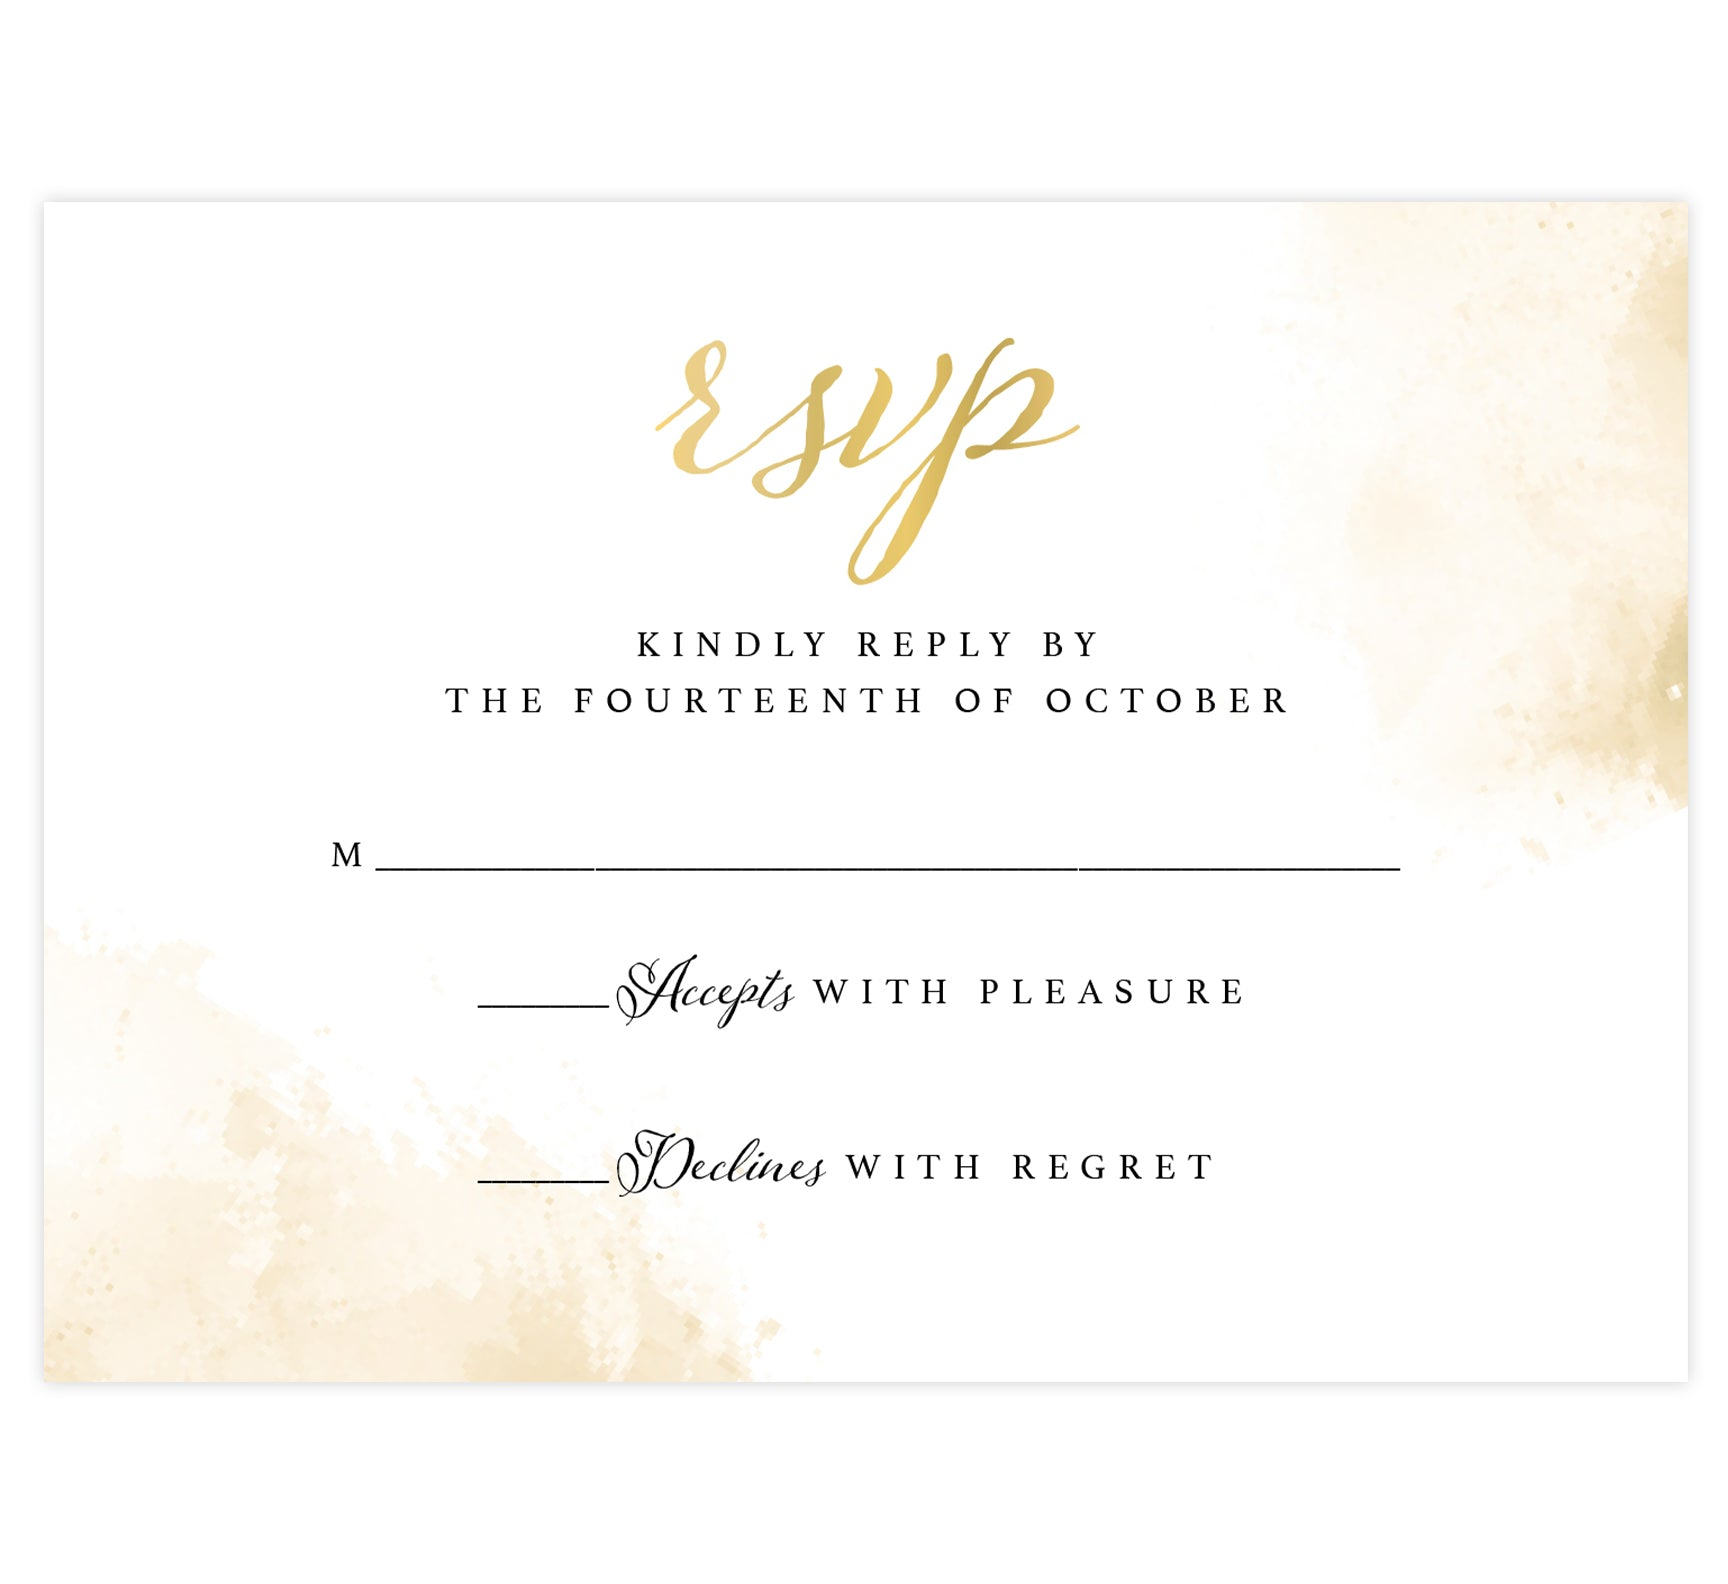 Elegant Skyline wedding invitation; white background with gold splashes in the top right and bottom left corners with black and gold text